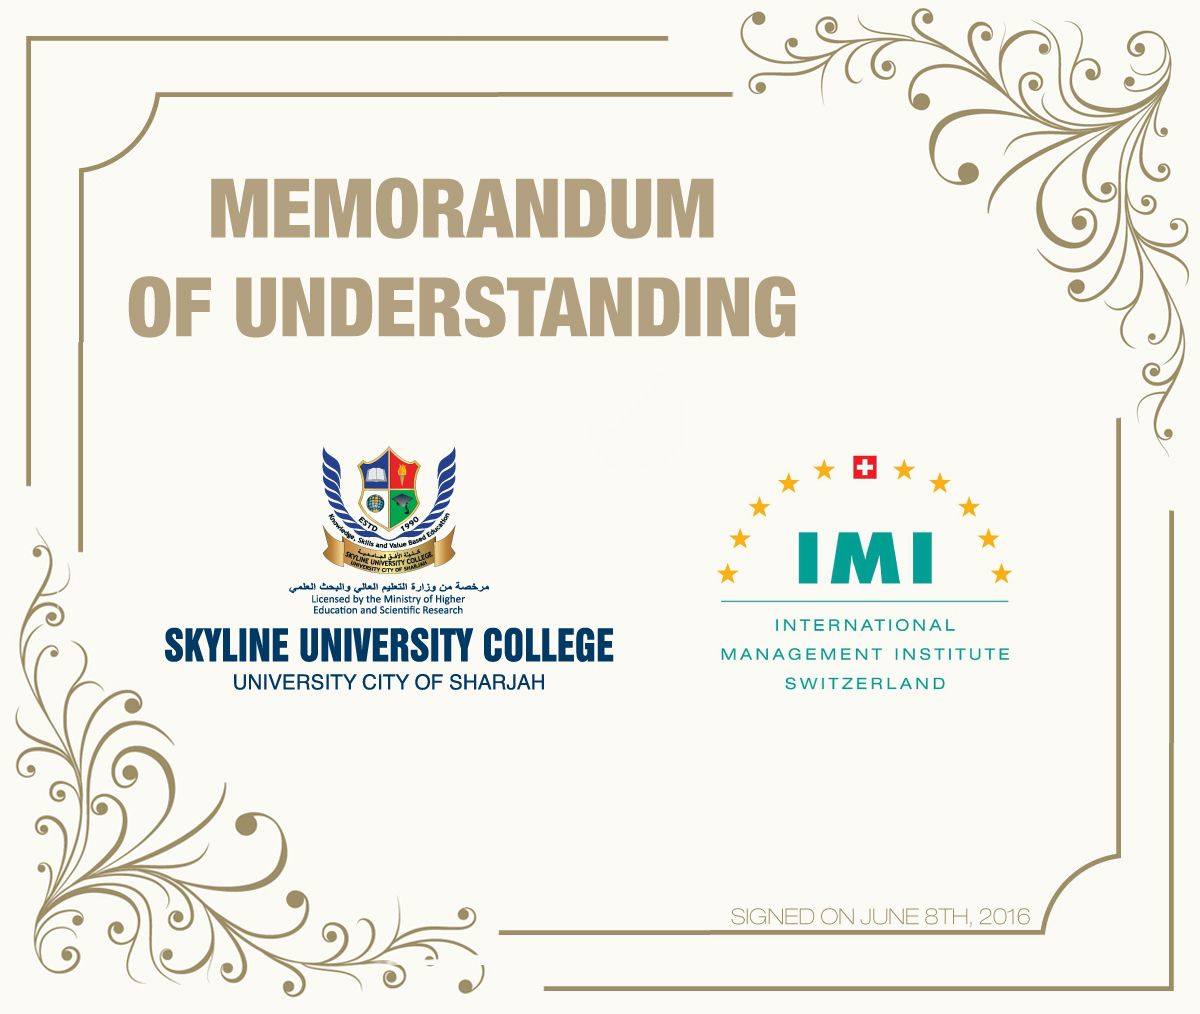 Suc signed an mou with international management institute skyline suc signed an mou with international management institute spiritdancerdesigns Image collections